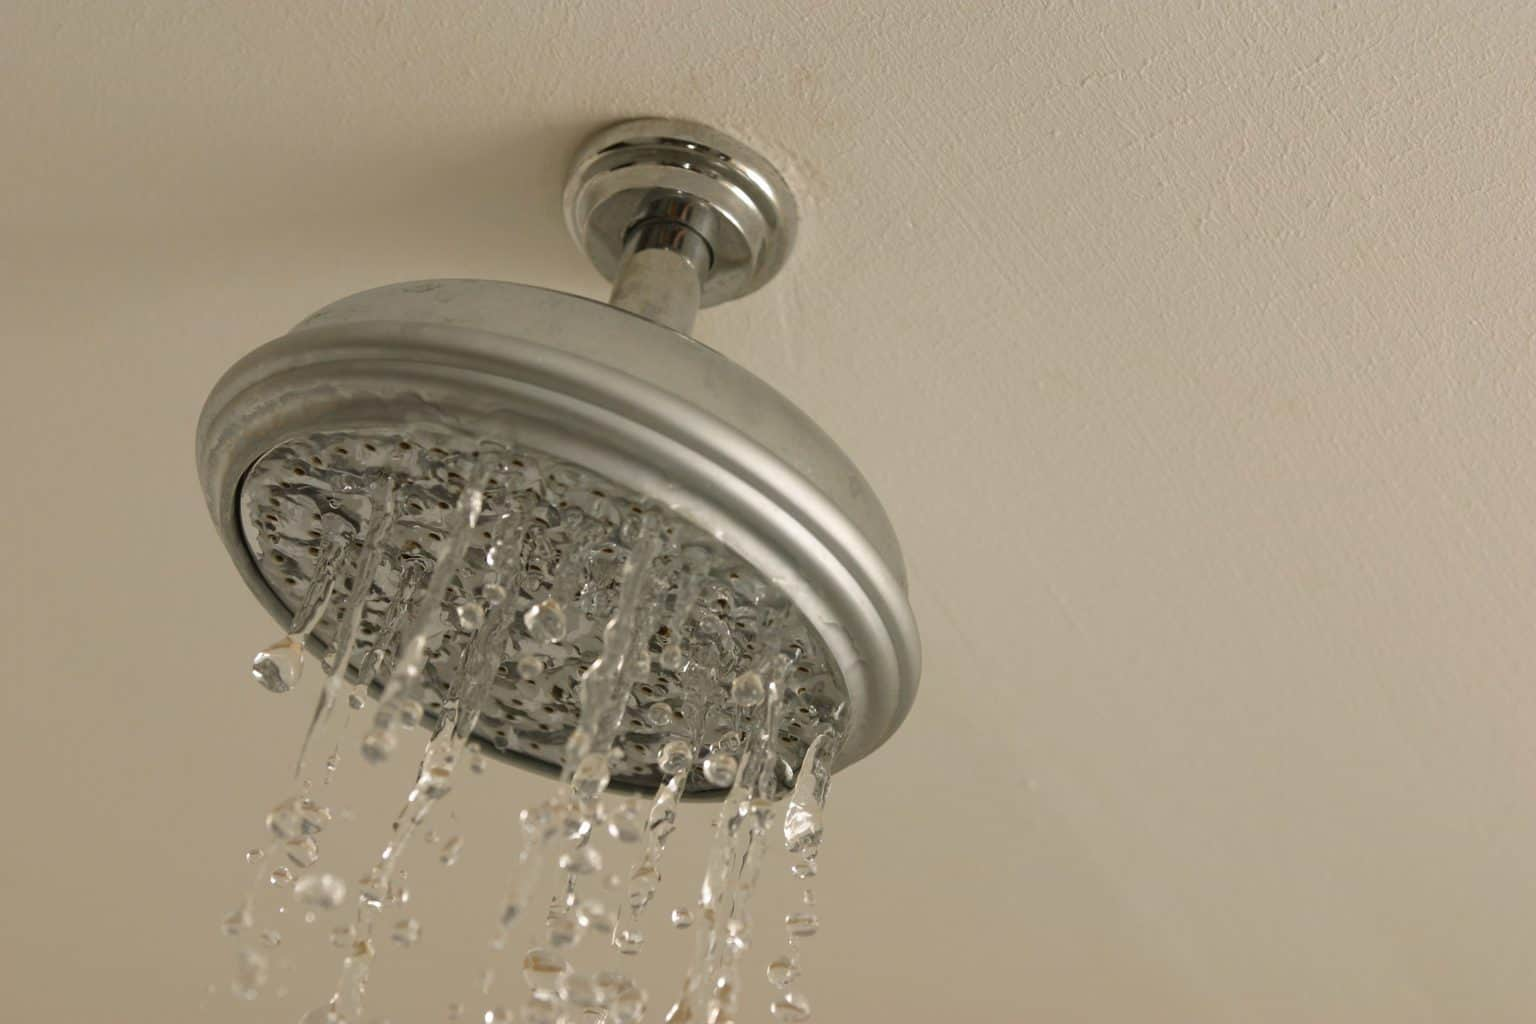 Water leaking from a shower head